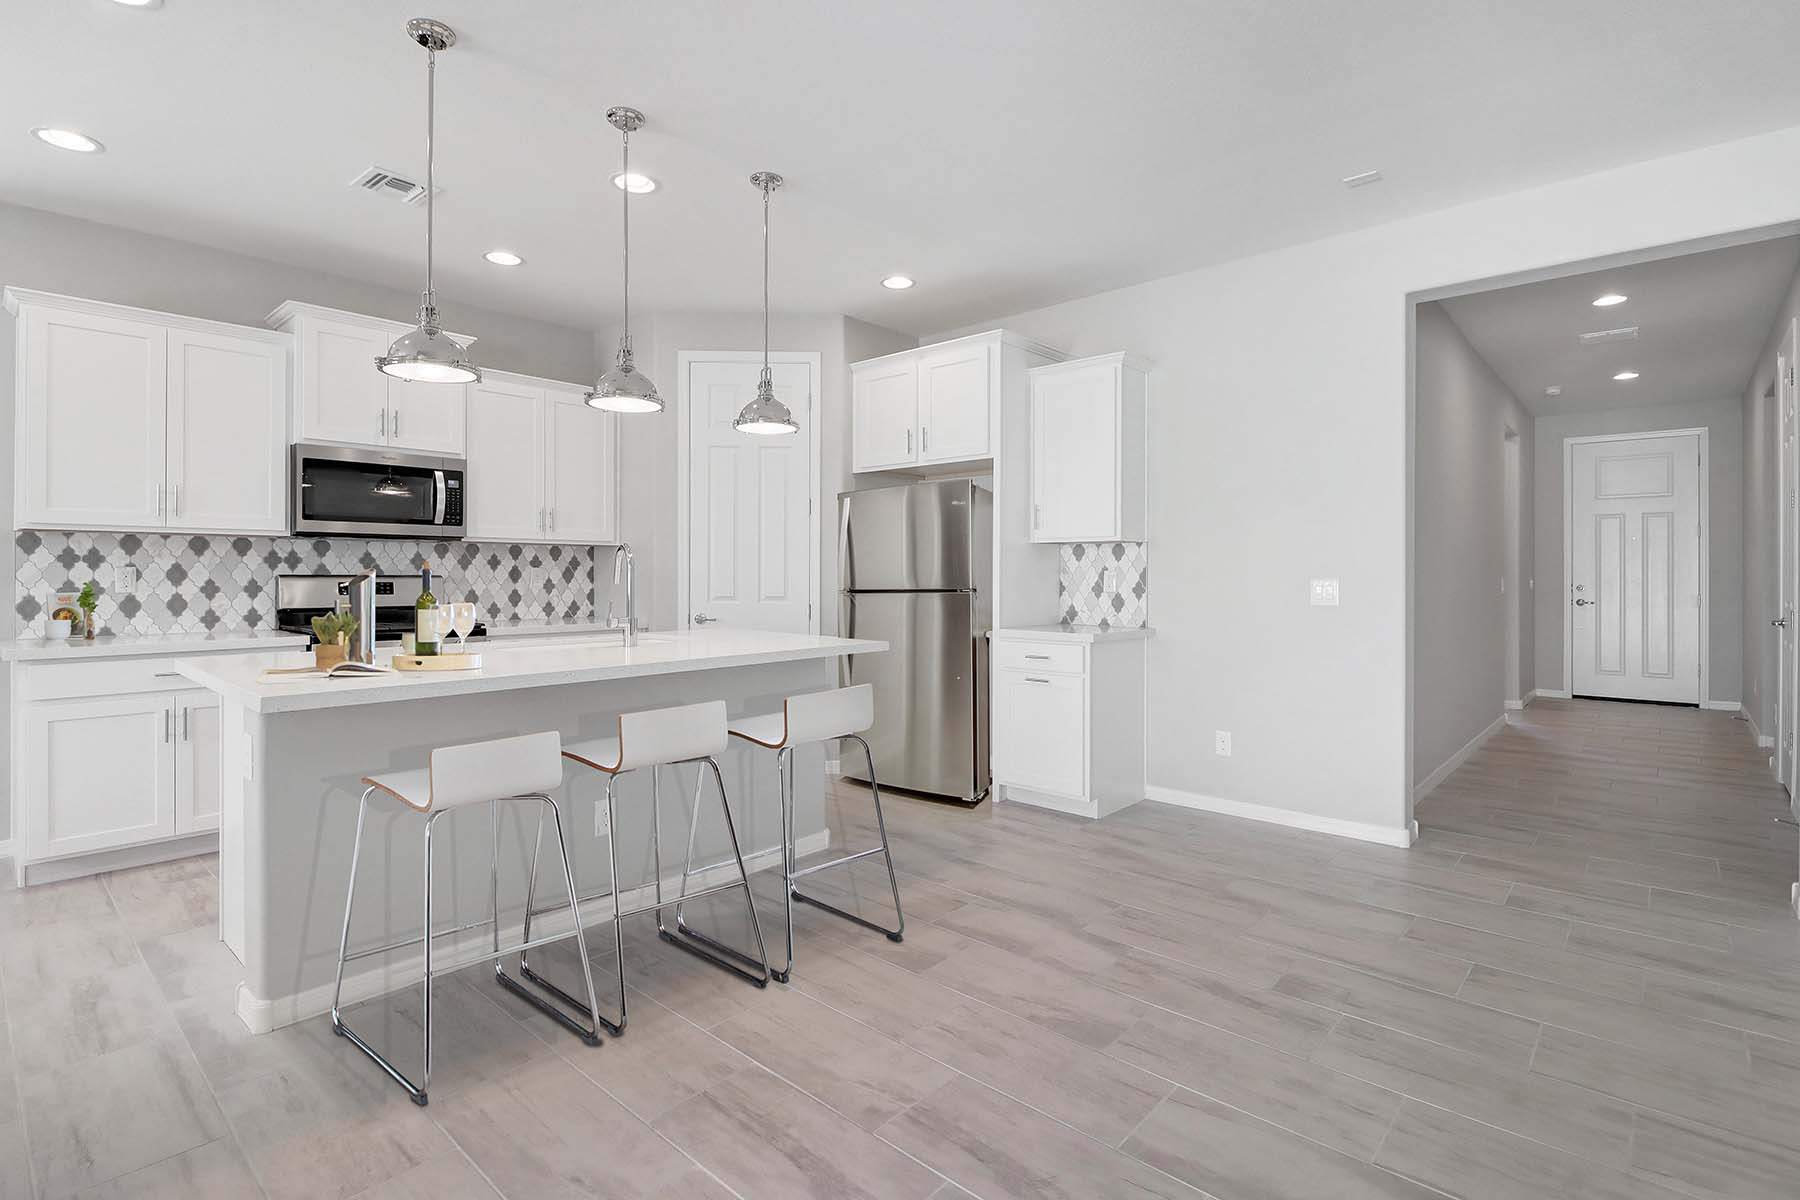 Allendale Plan Kitchen at Brookside at Arroyo Seco in Buckeye Arizona by Mattamy Homes